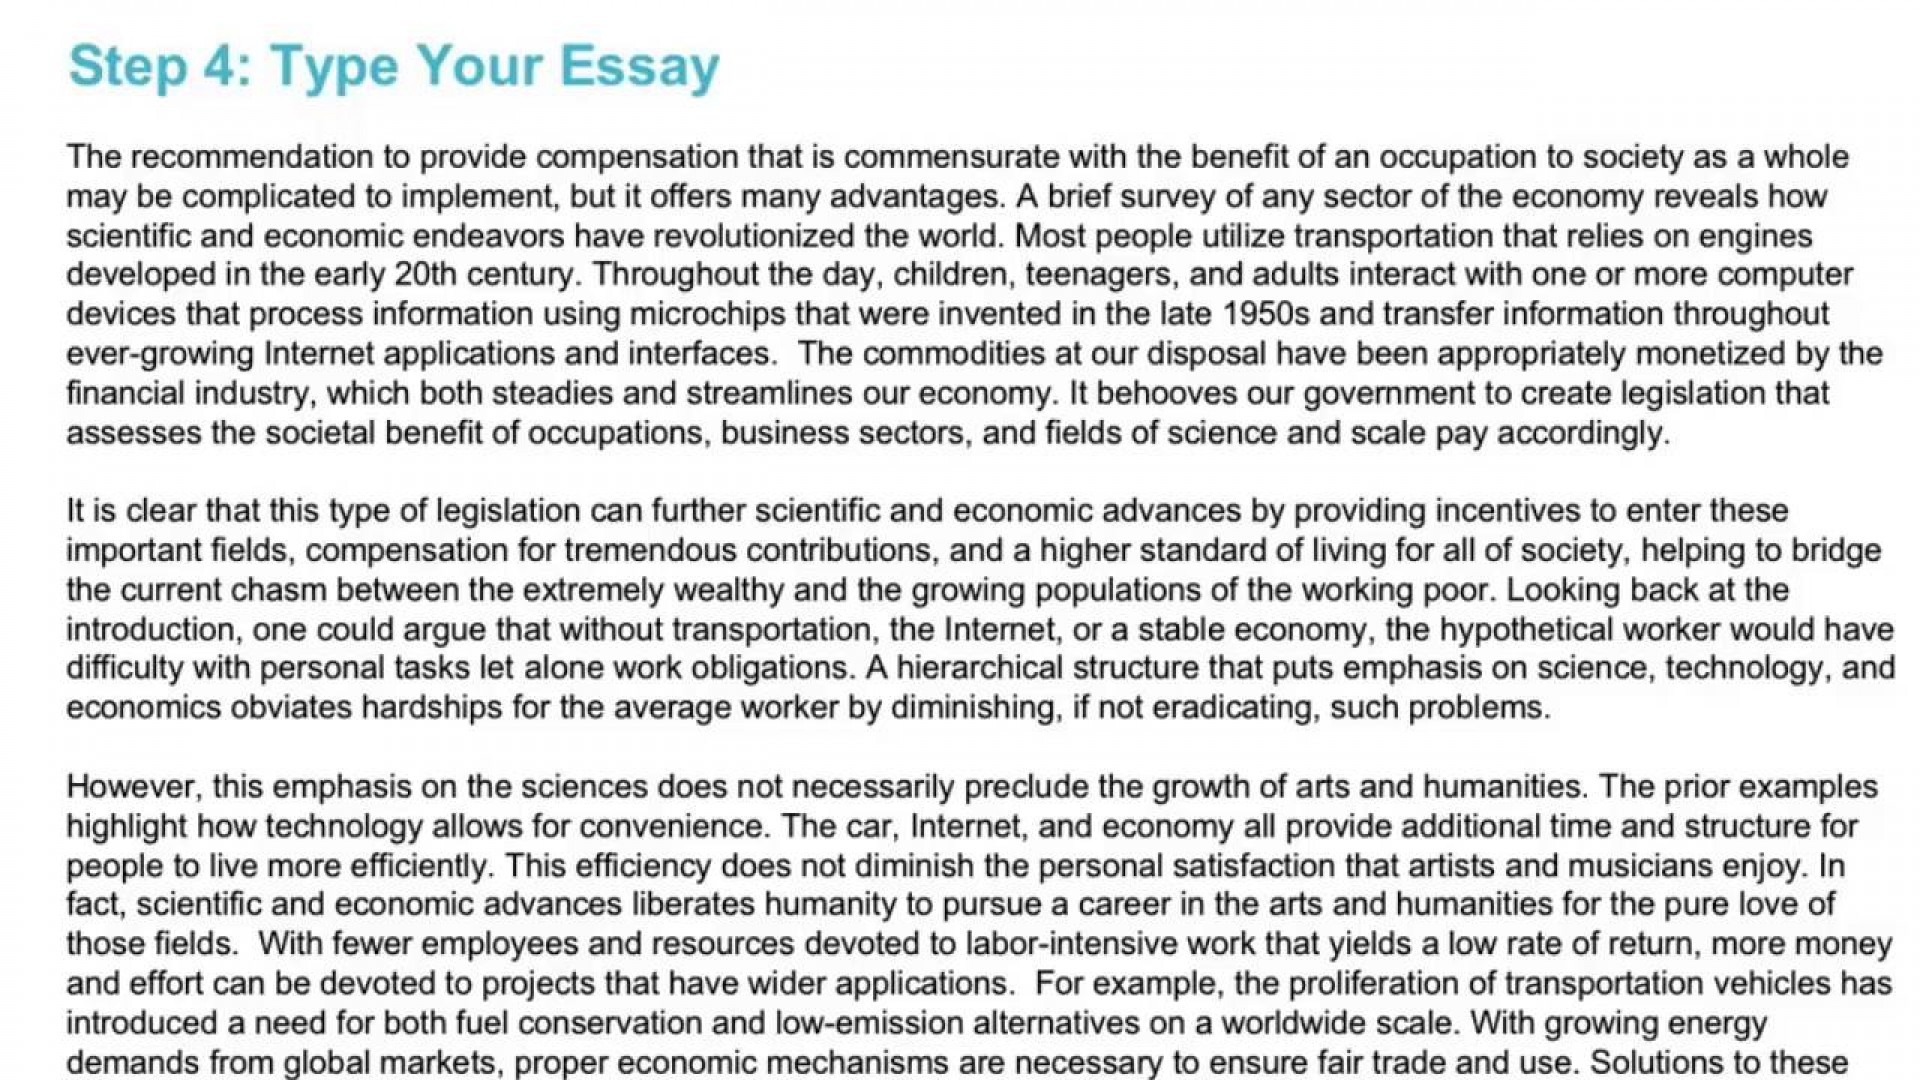 007 Gre Argument Essay Examples Example Unusual Sample Questions Analytical Writing Samples 1920